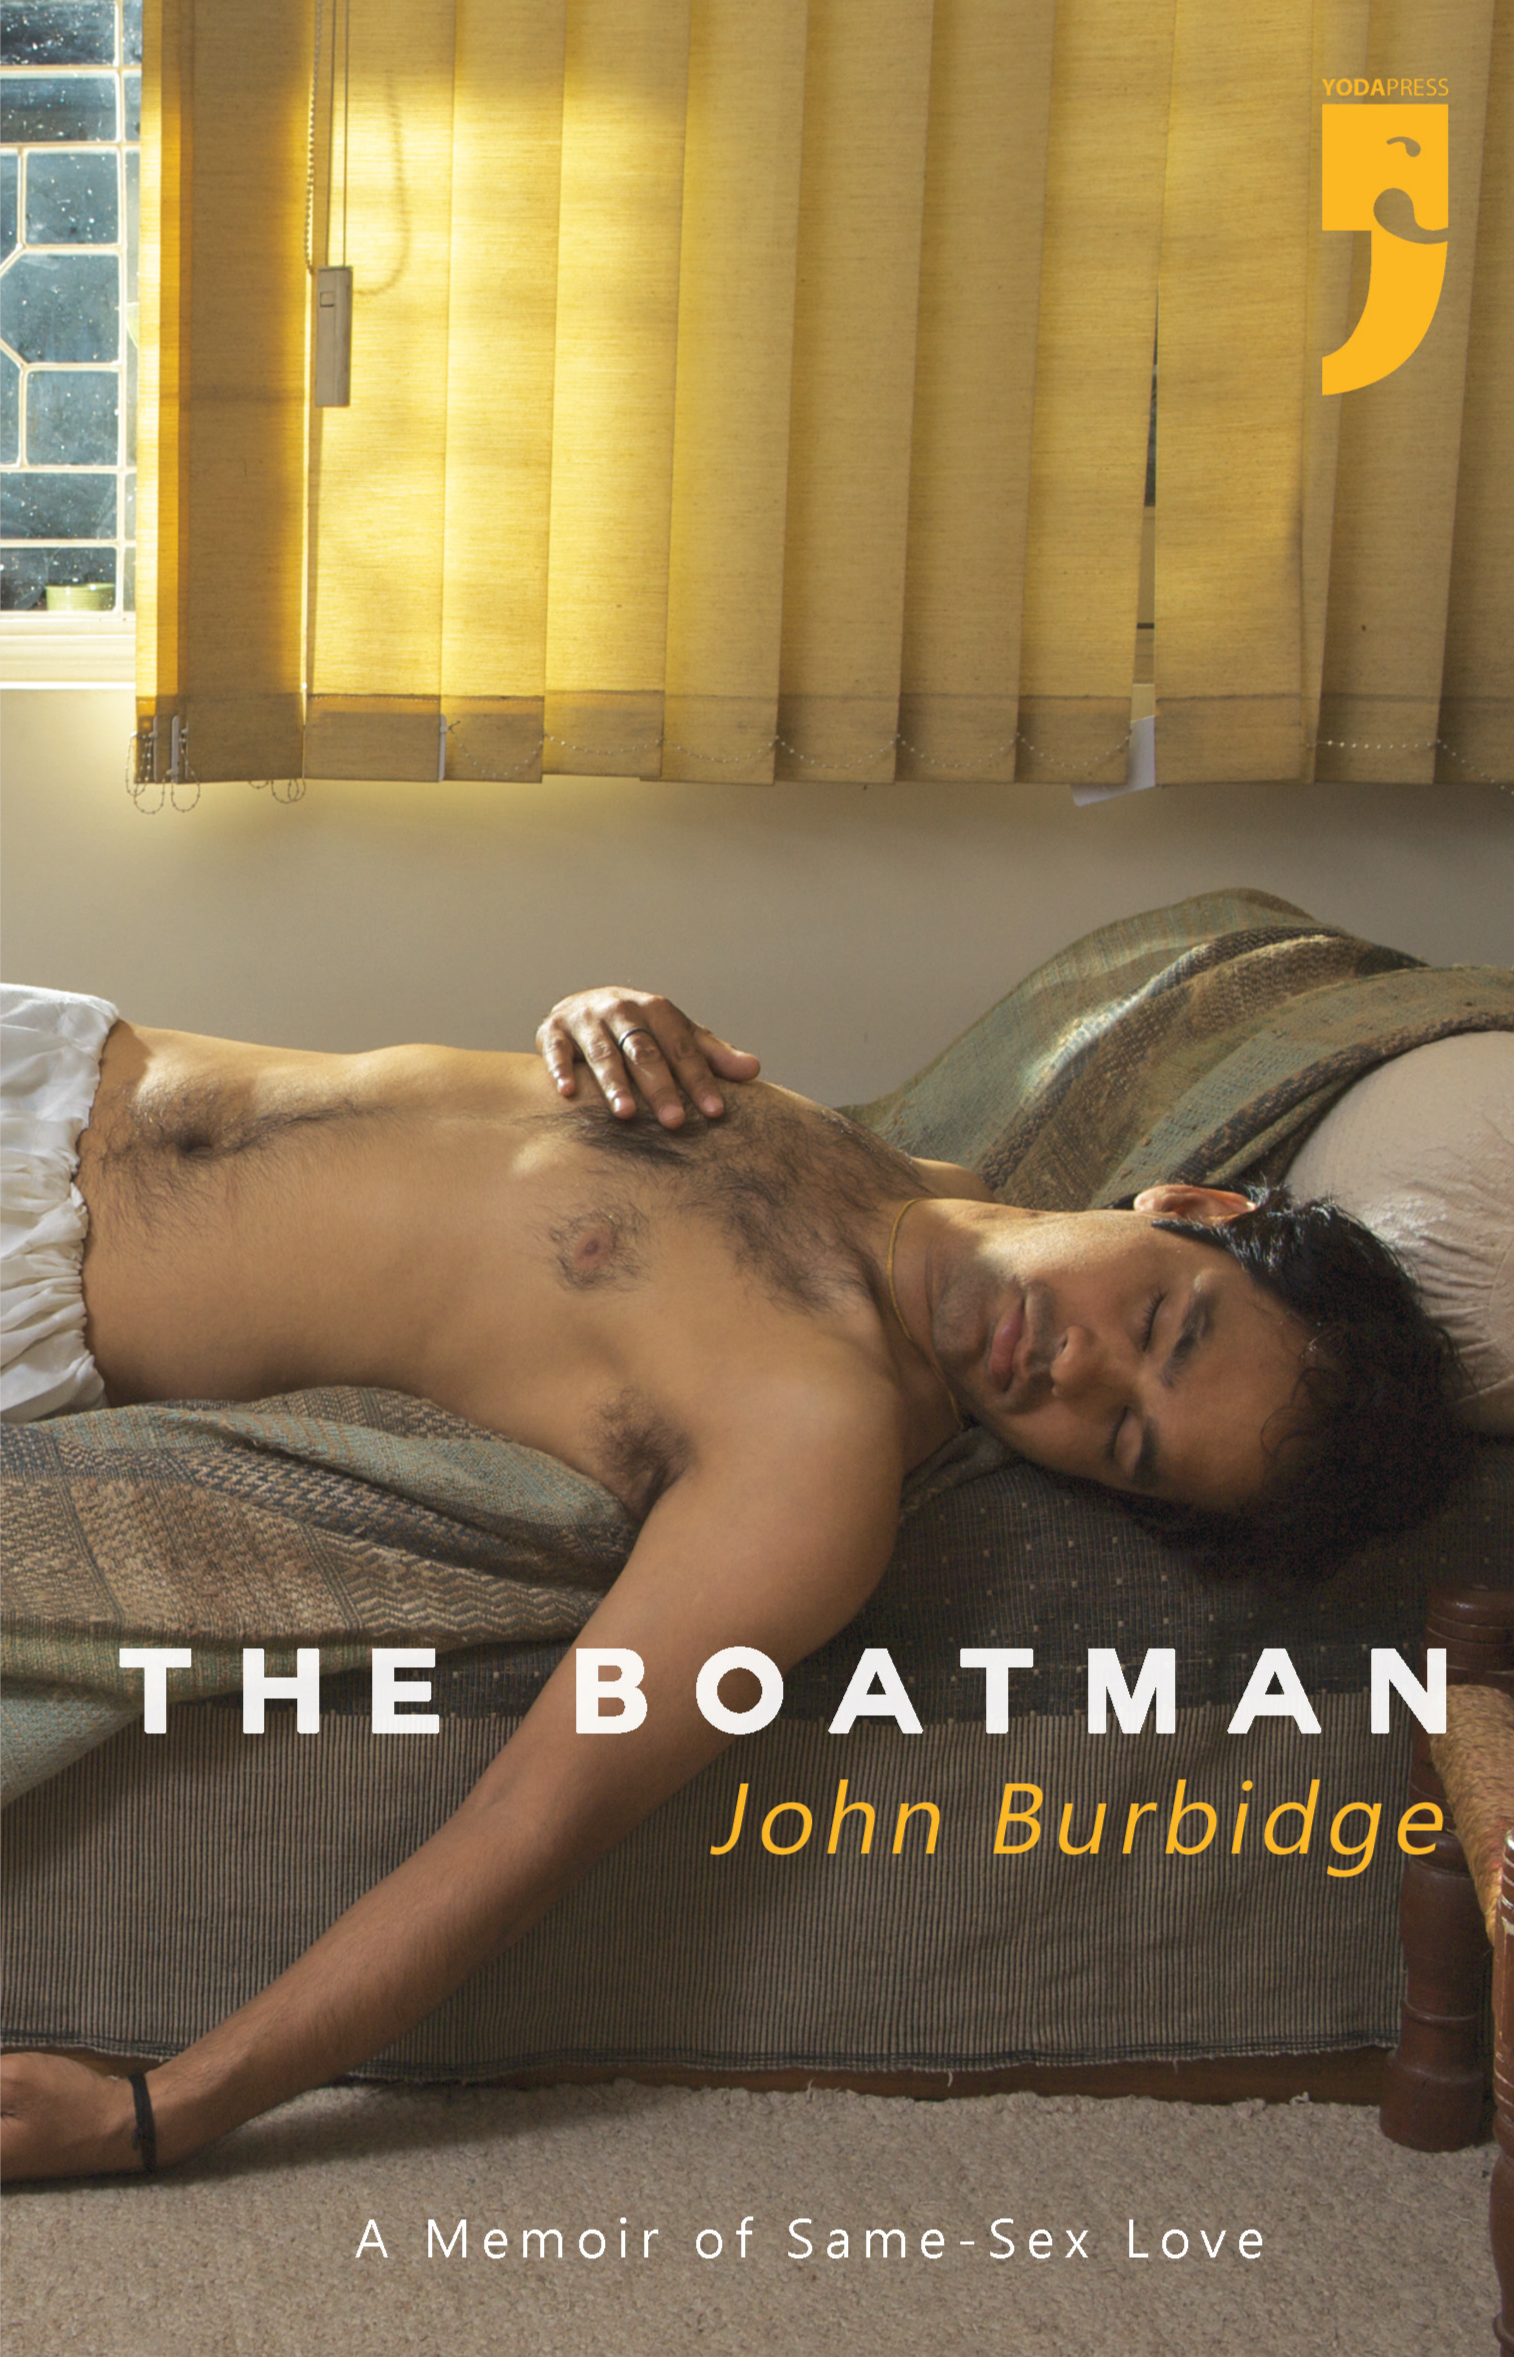 Extract from 'The Boatman' by John Burbidge (Yoda Press, 2014)